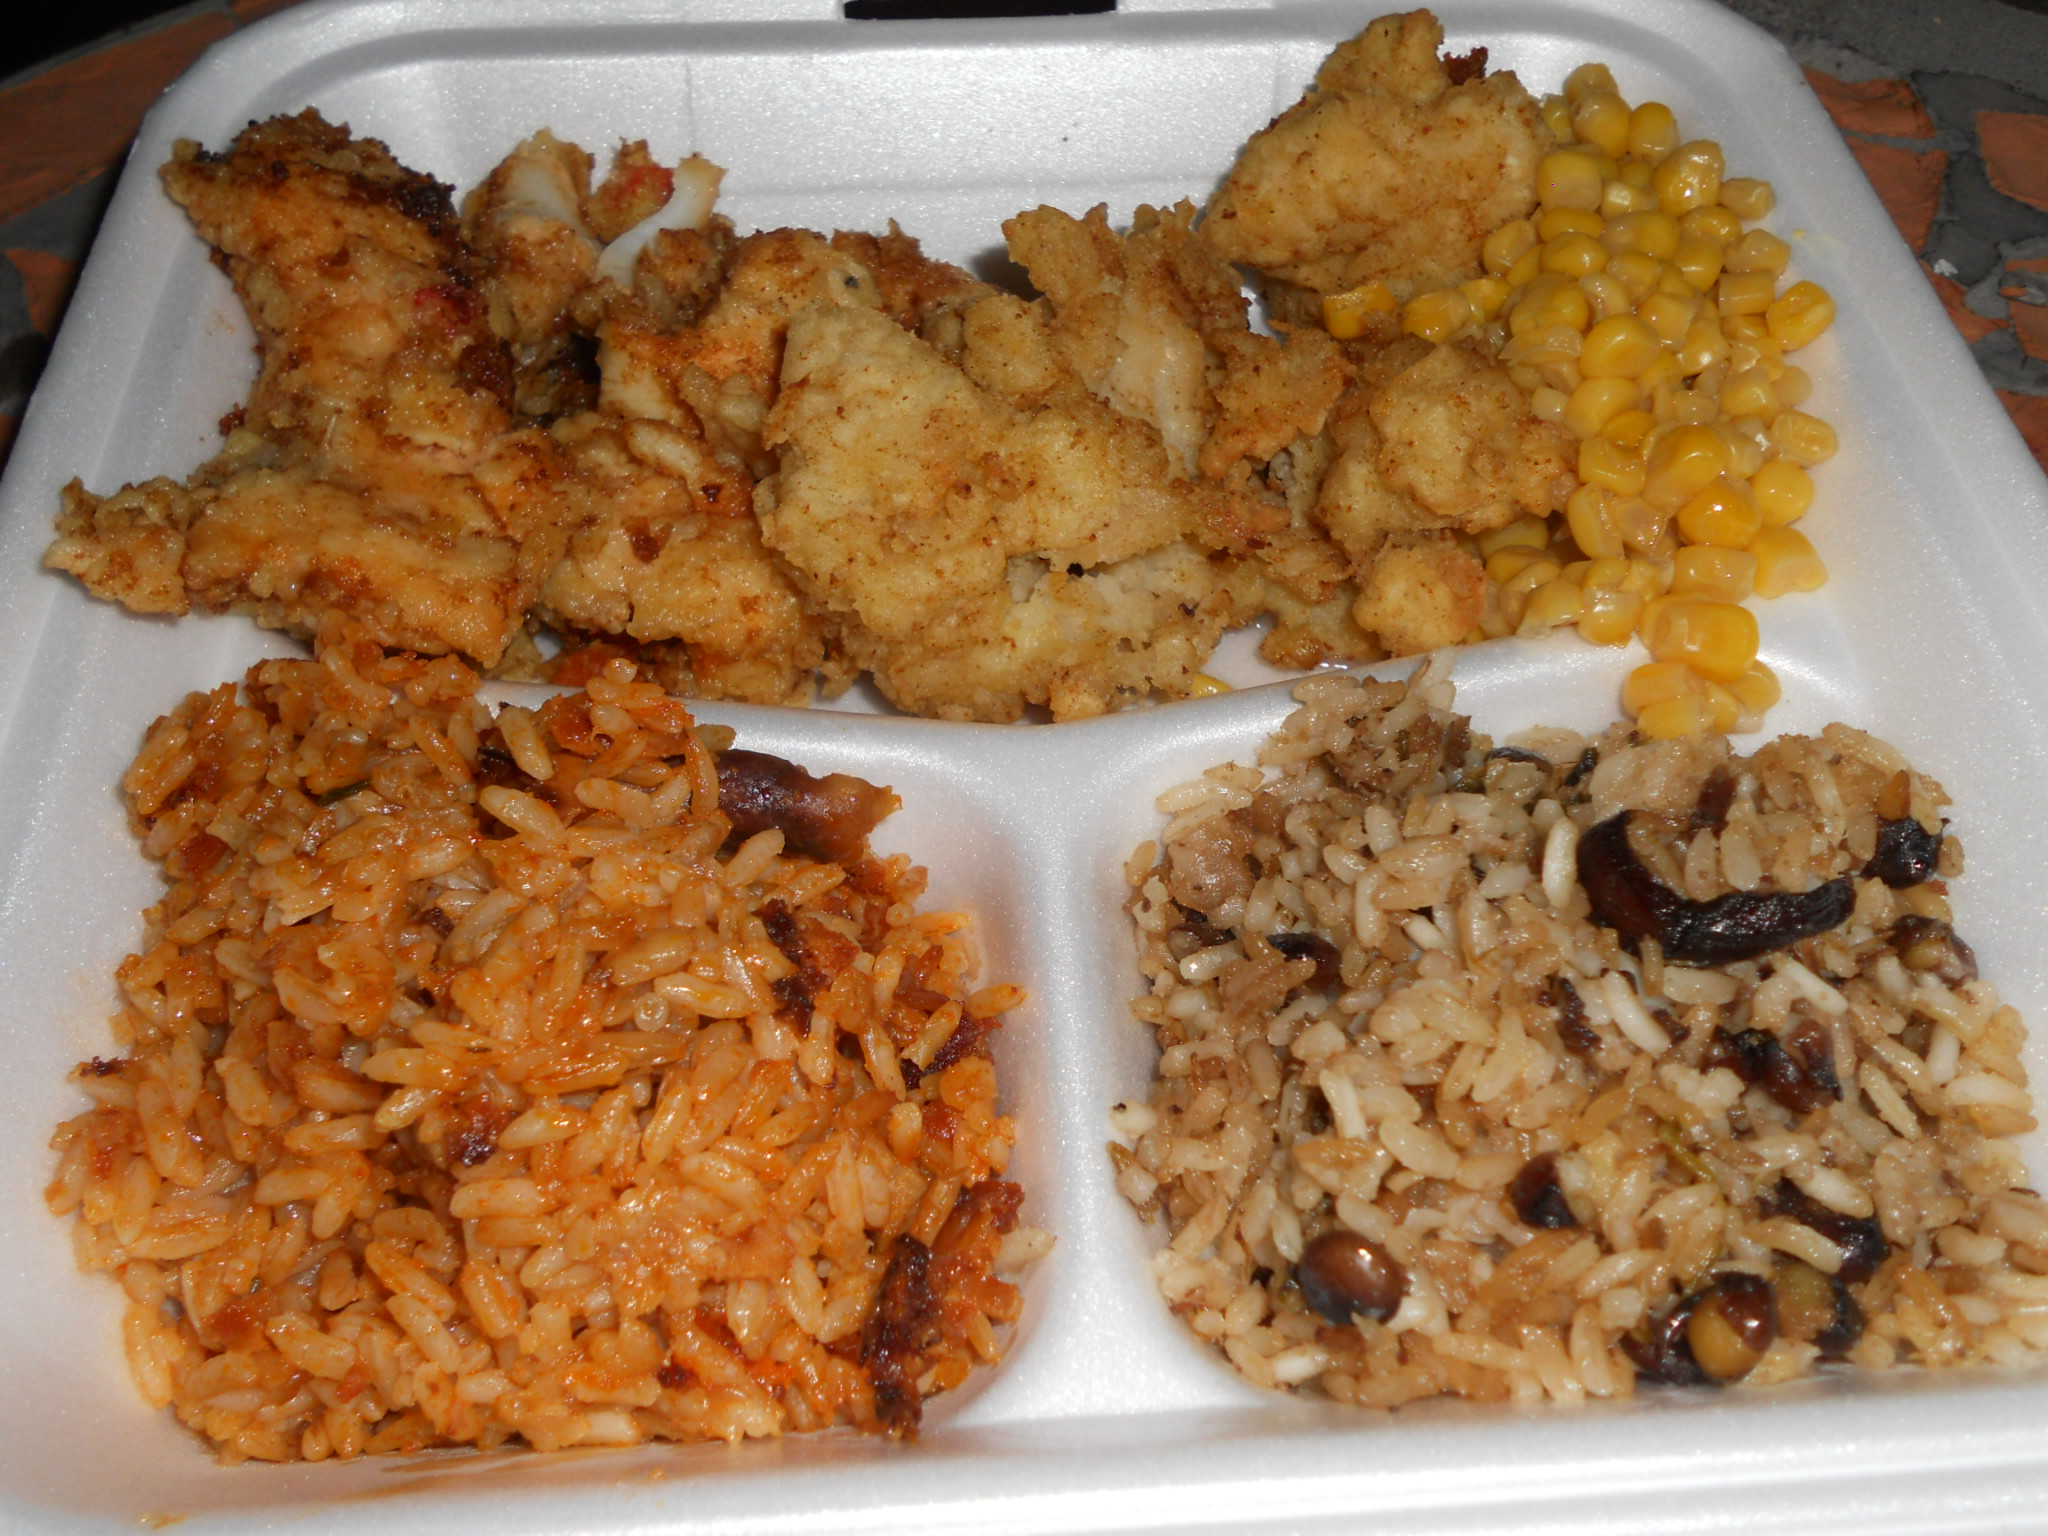 The Bahamas Food That They Eat